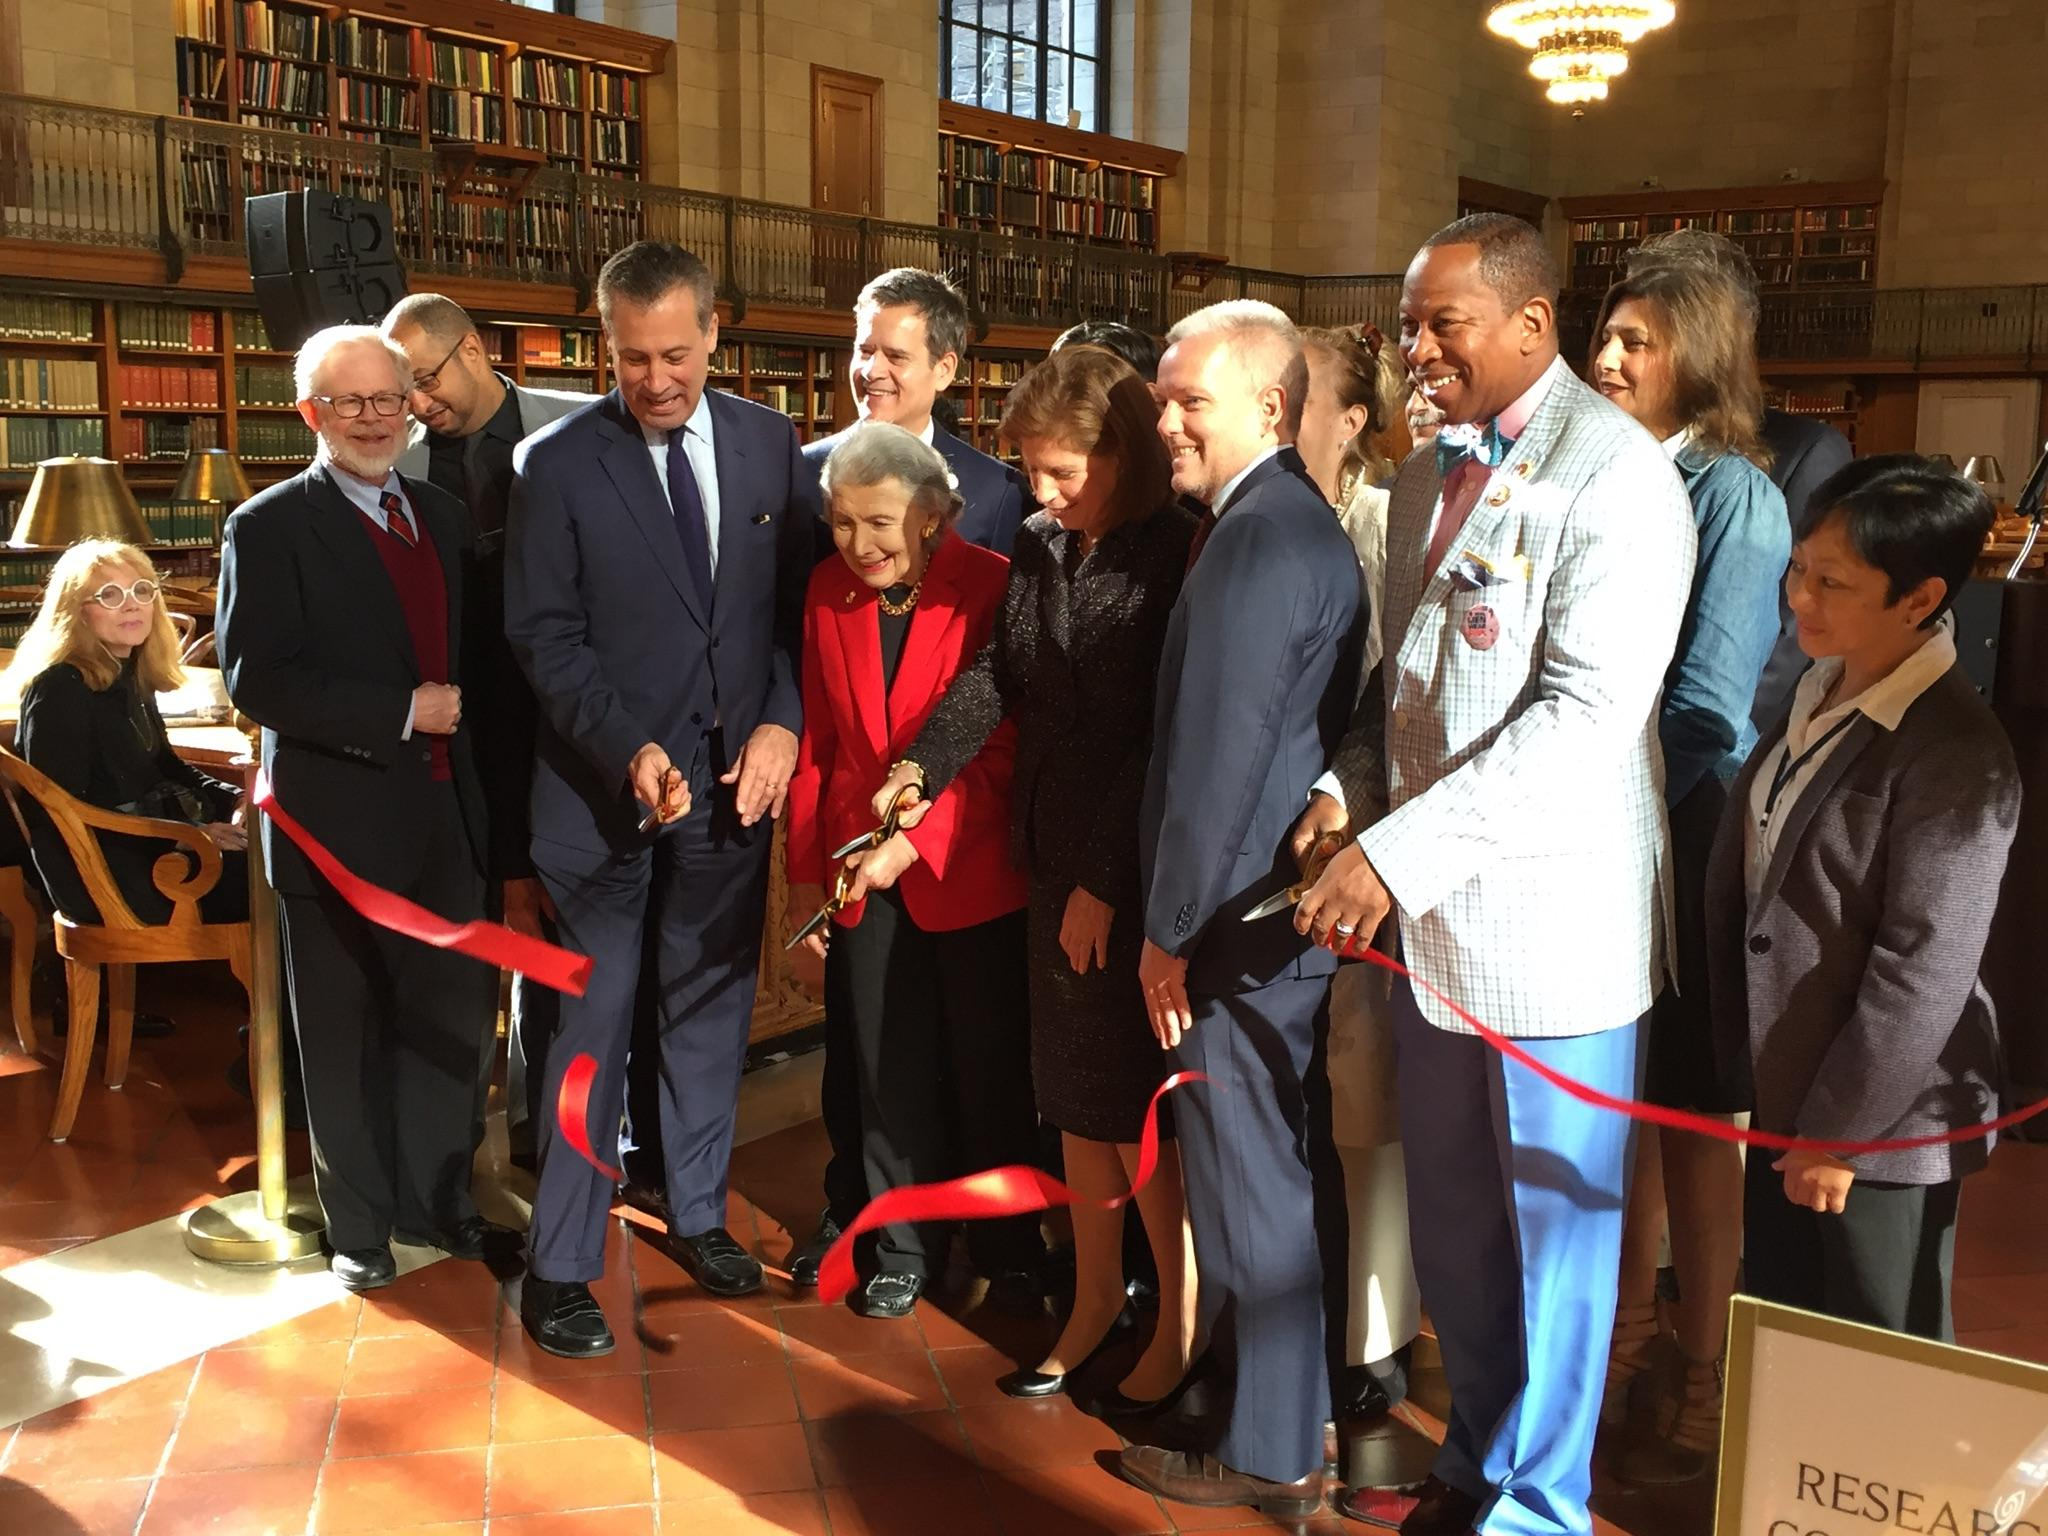 nypl-ribbon-cutting-10-5-16-3